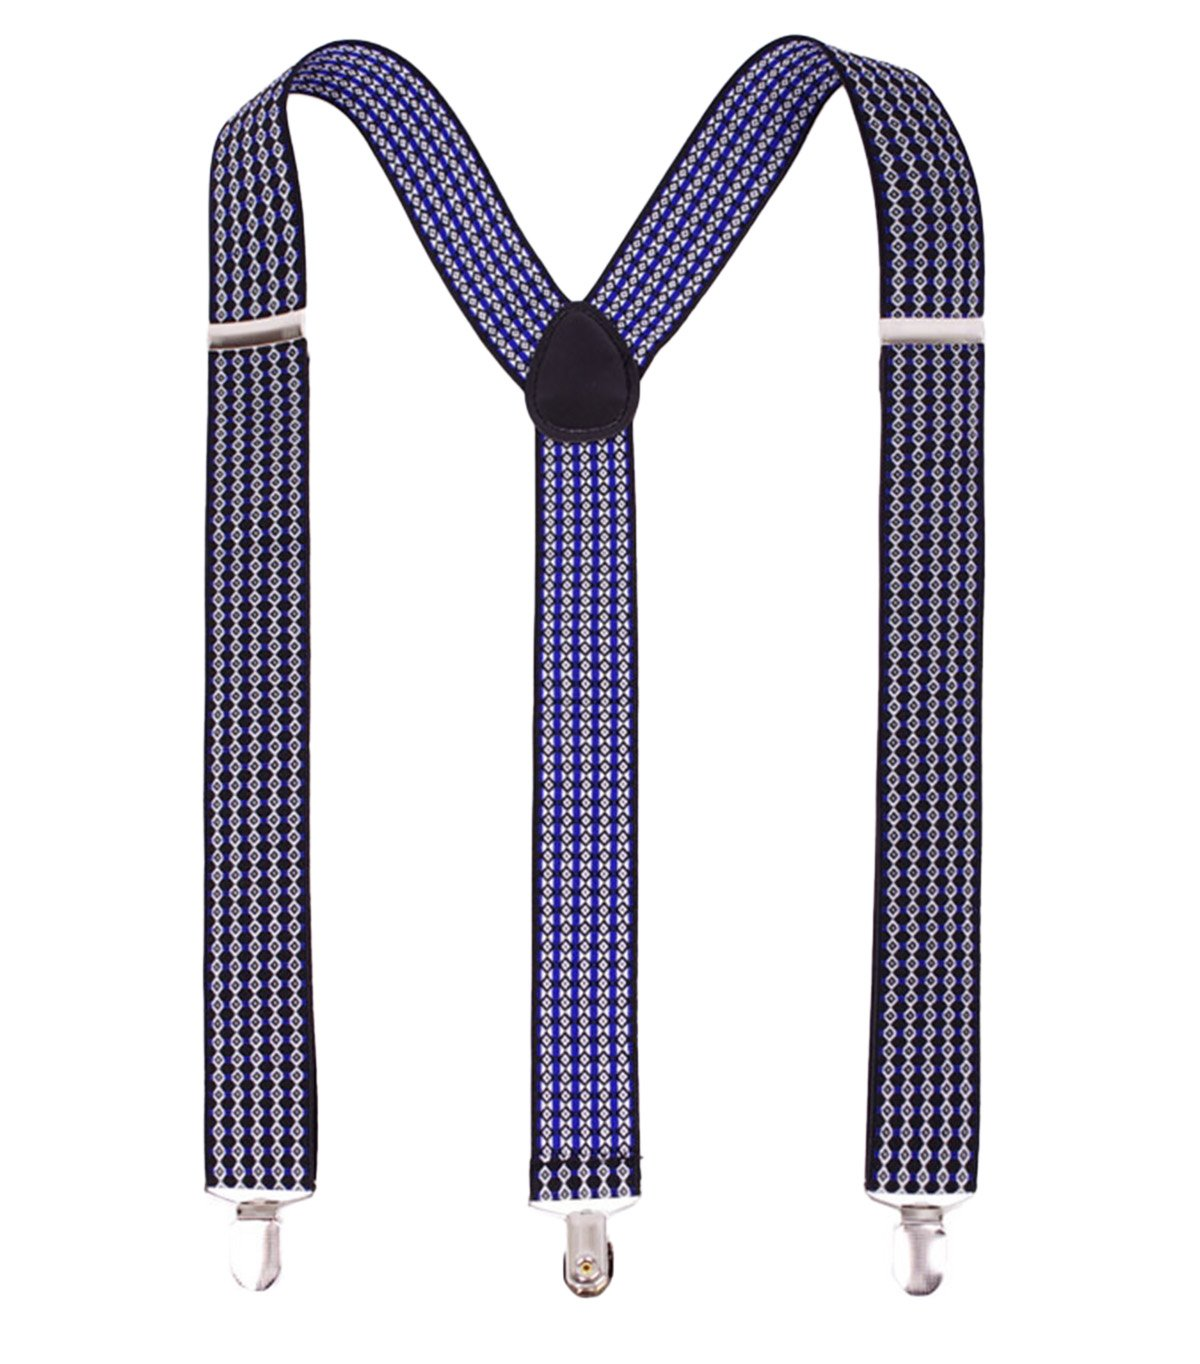 Wide Suspenders with Strong Clips for Mens Elastic Braces Heavy Duty